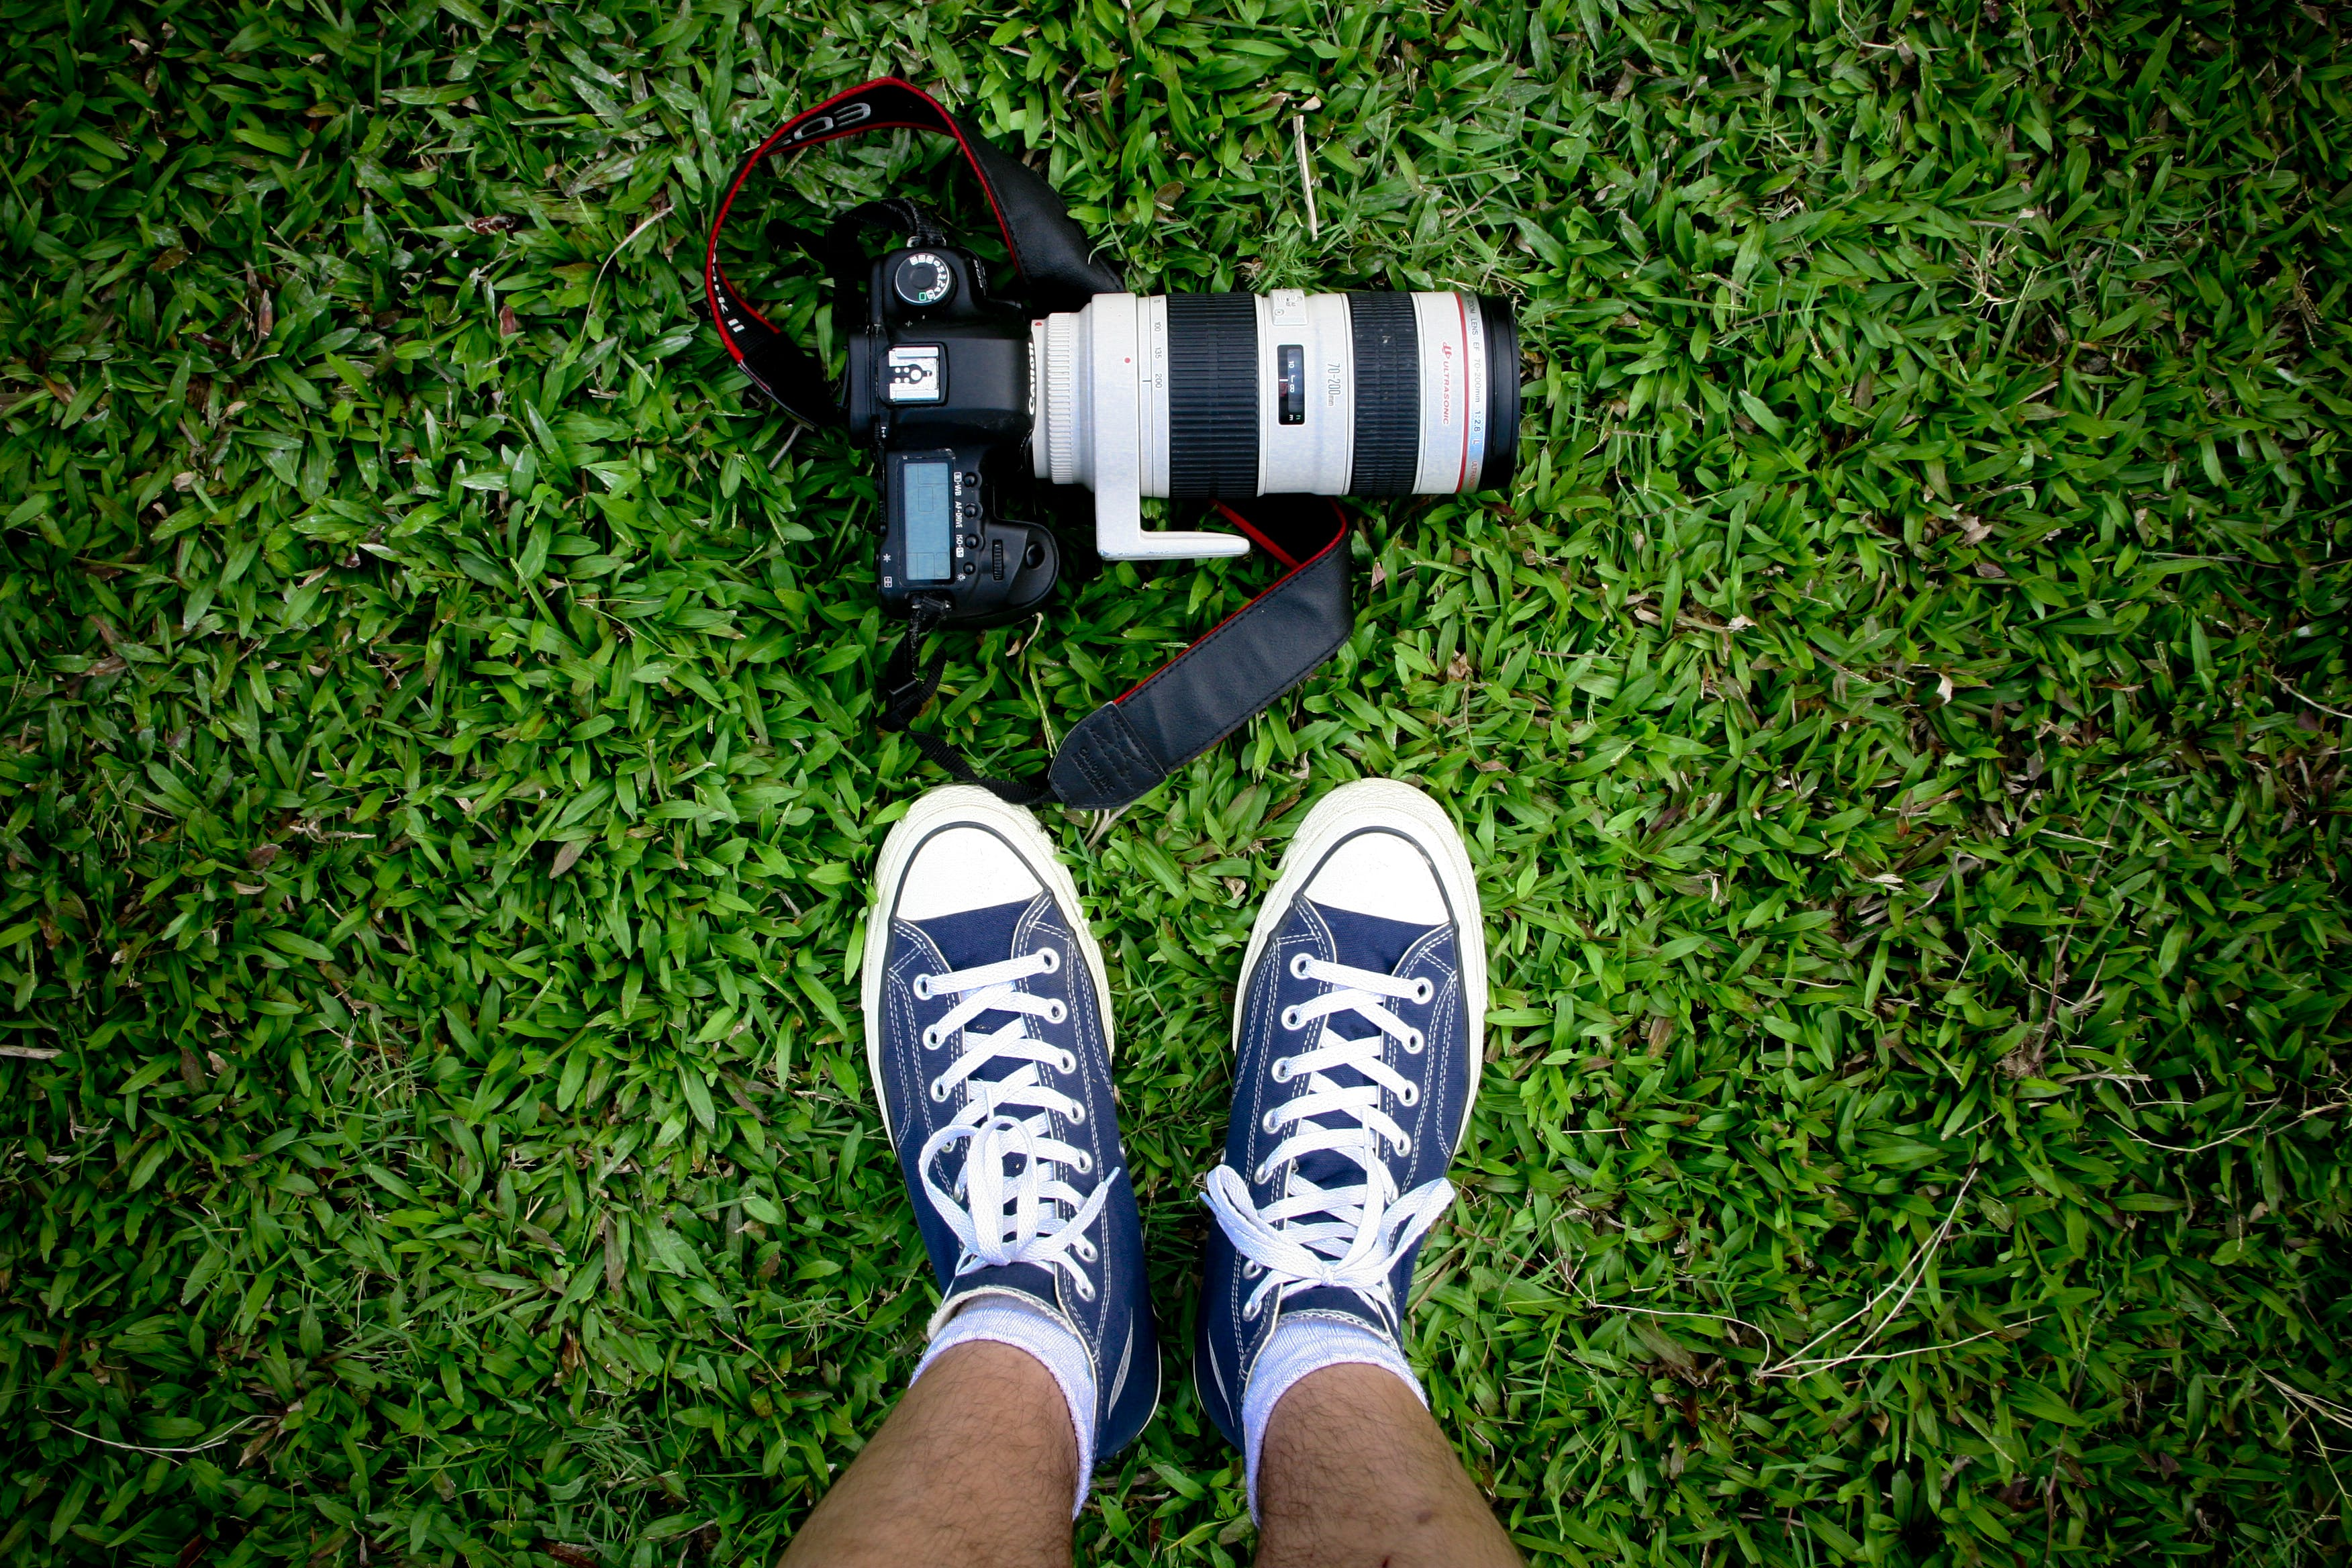 Top View Photo of Camera Near Shoes